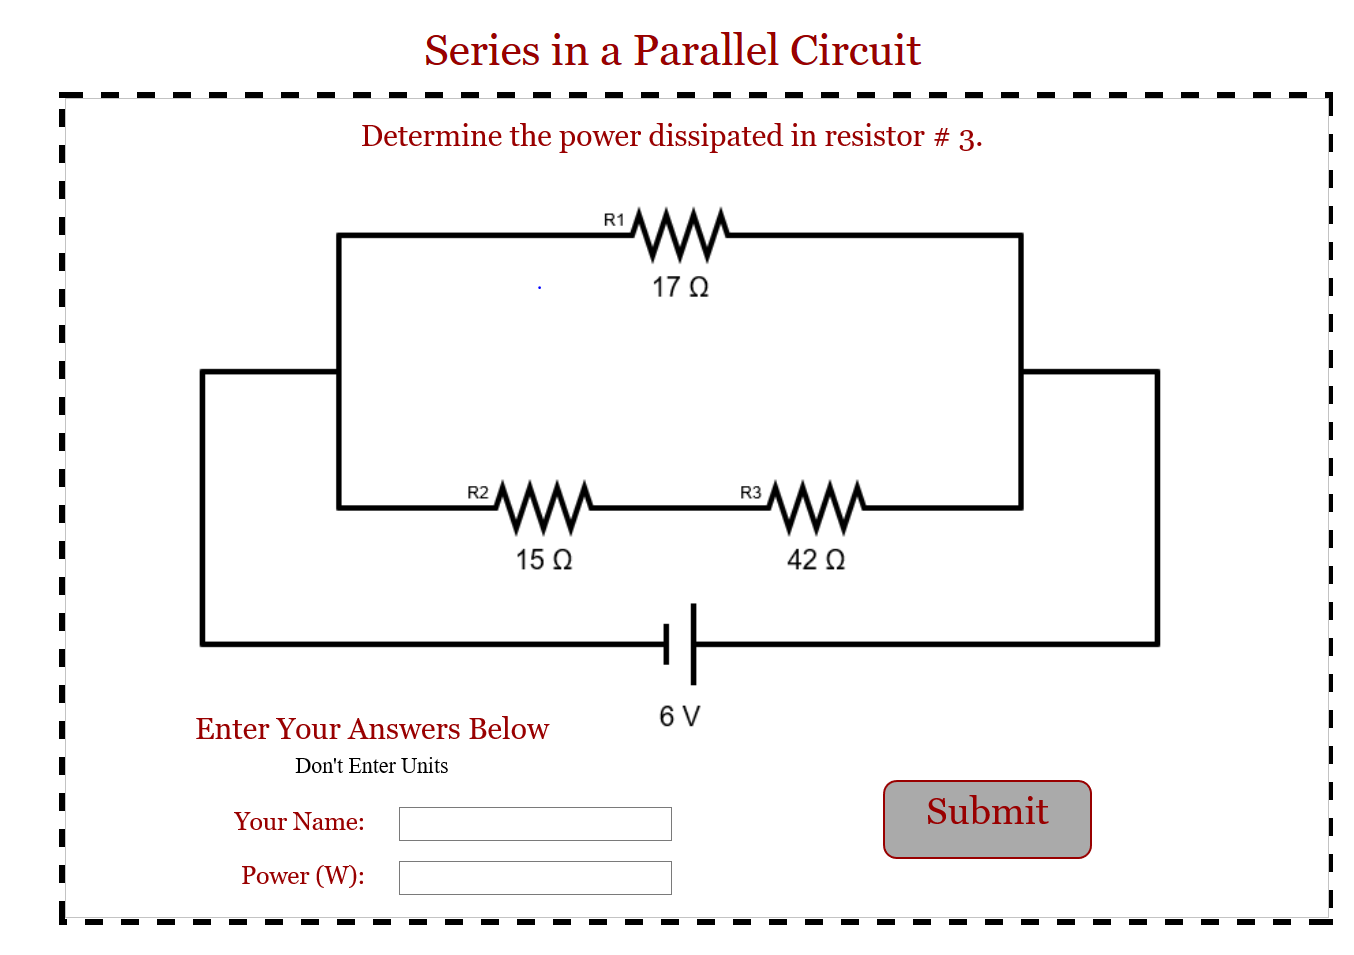 Series in a Parallel Circuit Determine the power dissipated in resistor # 3. R1 17Ω R2 R3 15Ω 42 Ω 6 V Enter Your Answers Below Dont Enter Units Submit Your Name: Power (W):